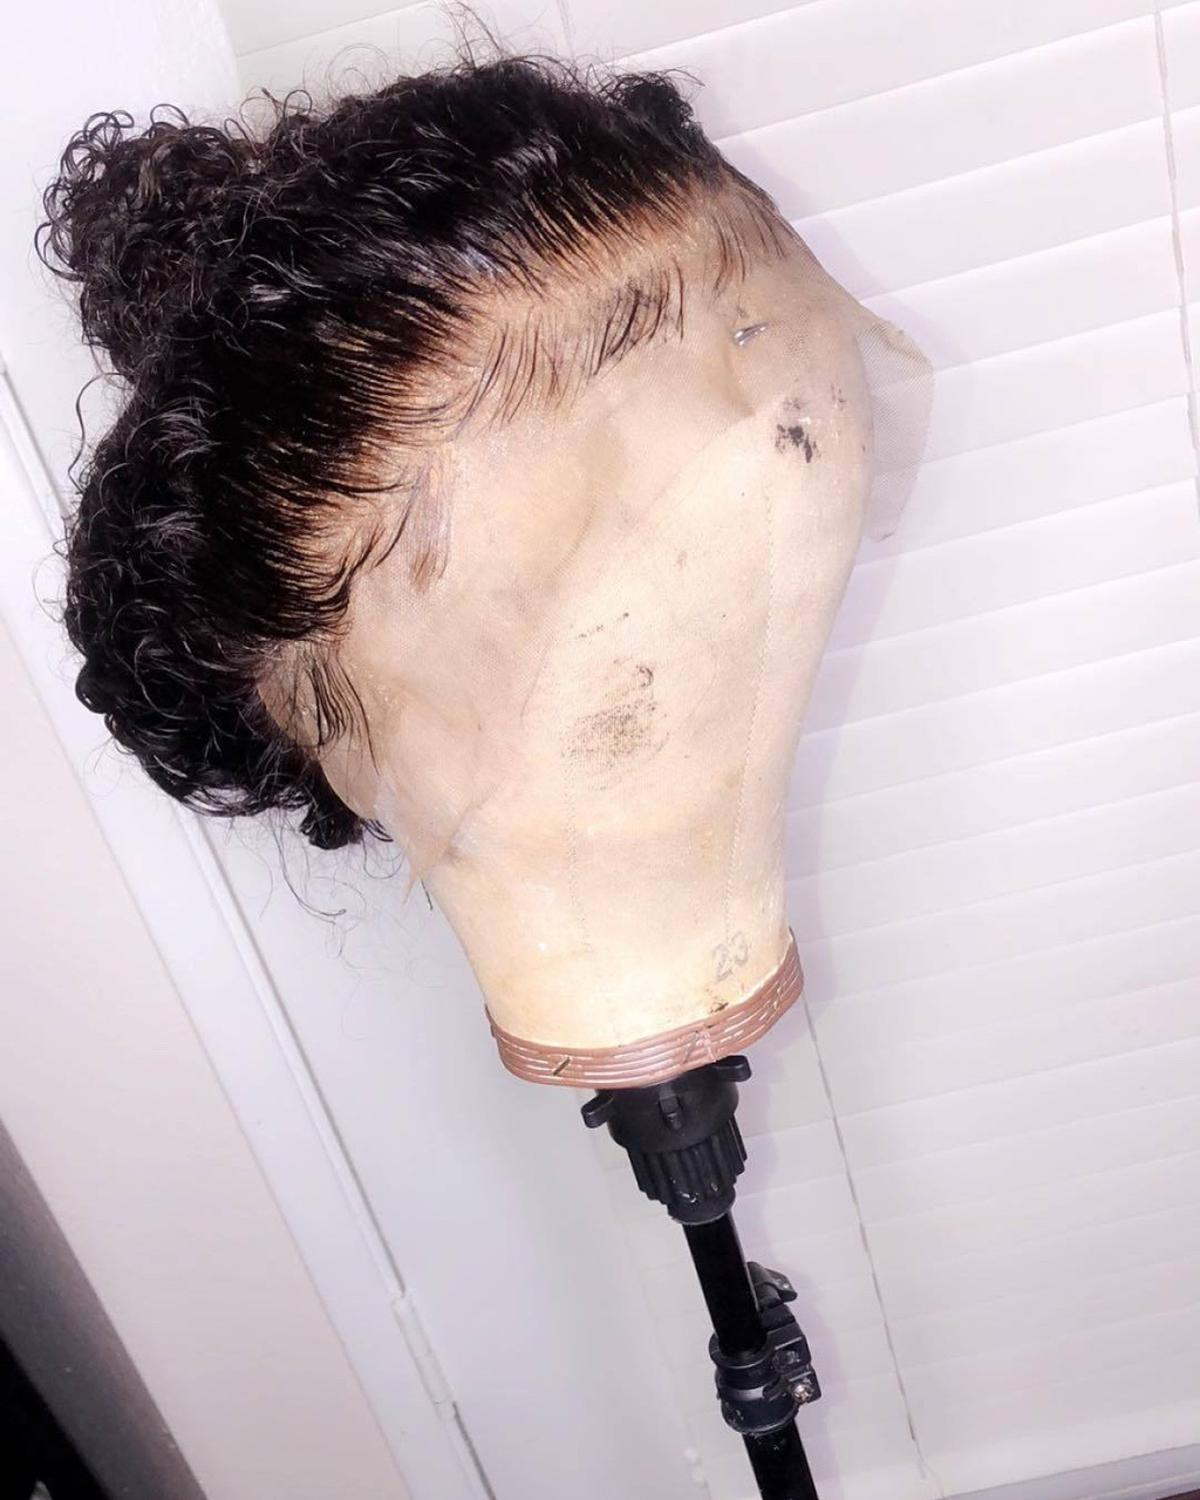 ALICROWN Curly Lace Front Human Hair Wigs Brazilian Remy Hair 13 4 Lace Front Wigs Pre